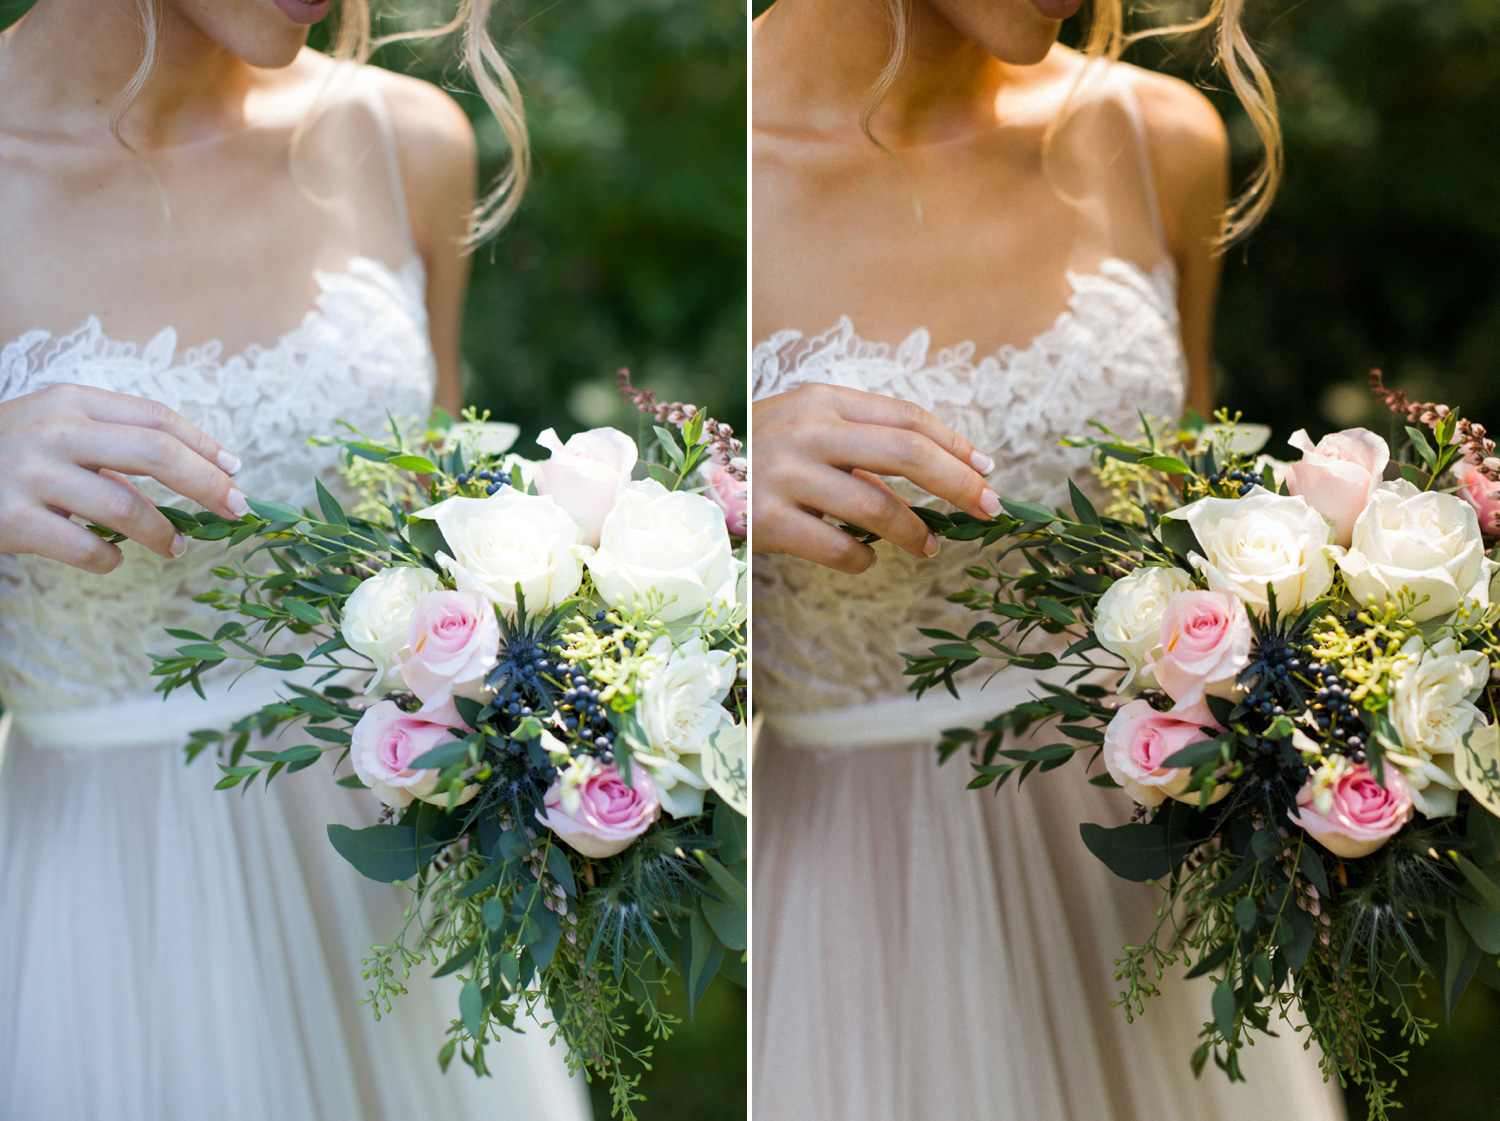 Such a gorgeous bouquet - I adjusted the color tone from a cool blue to a warmer yellow (more like the natural sunlight) and increased the contrast to make the image feel richer.